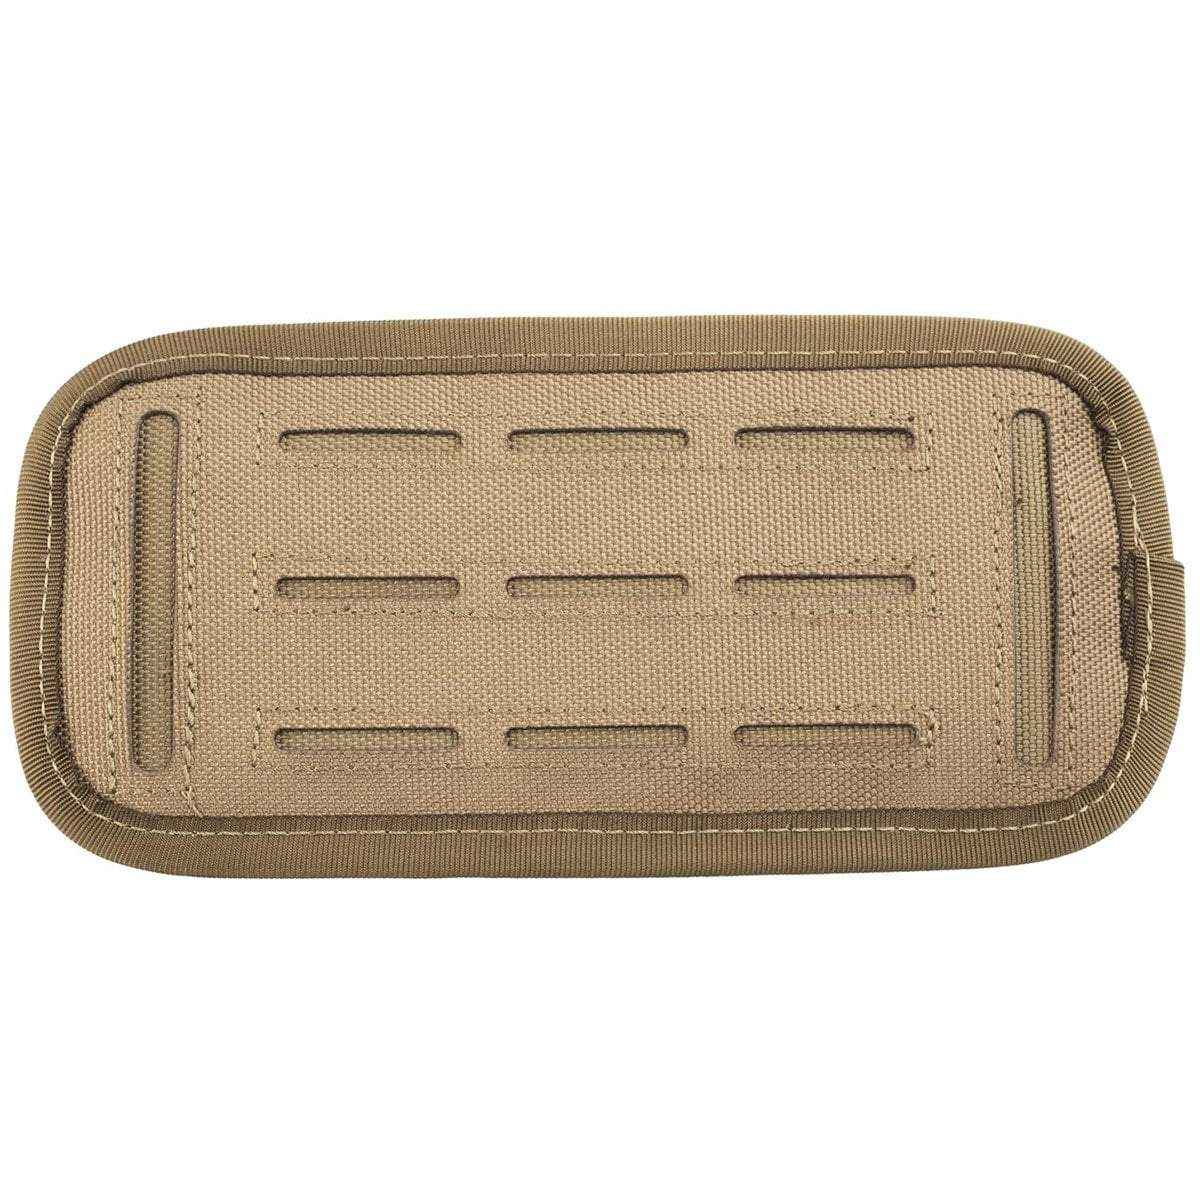 Defcon 5 Padded MOLLE Belt Panel Coyote | UKMC Pro